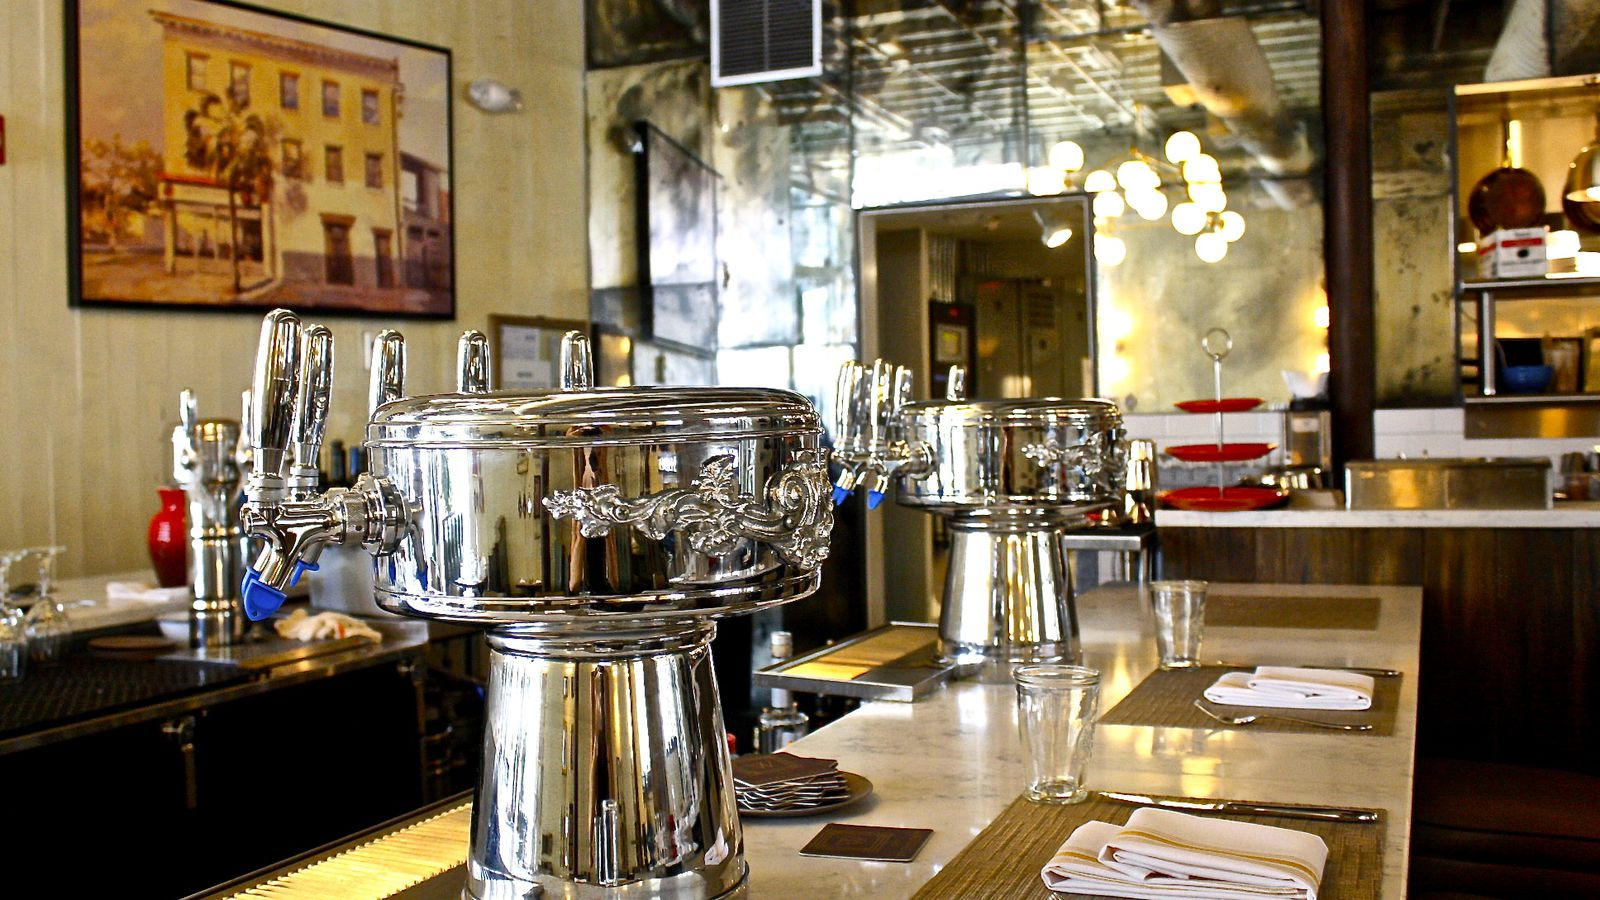 The westendorff to reopen as greek restaurant stella s for Stellas fish cafe menu